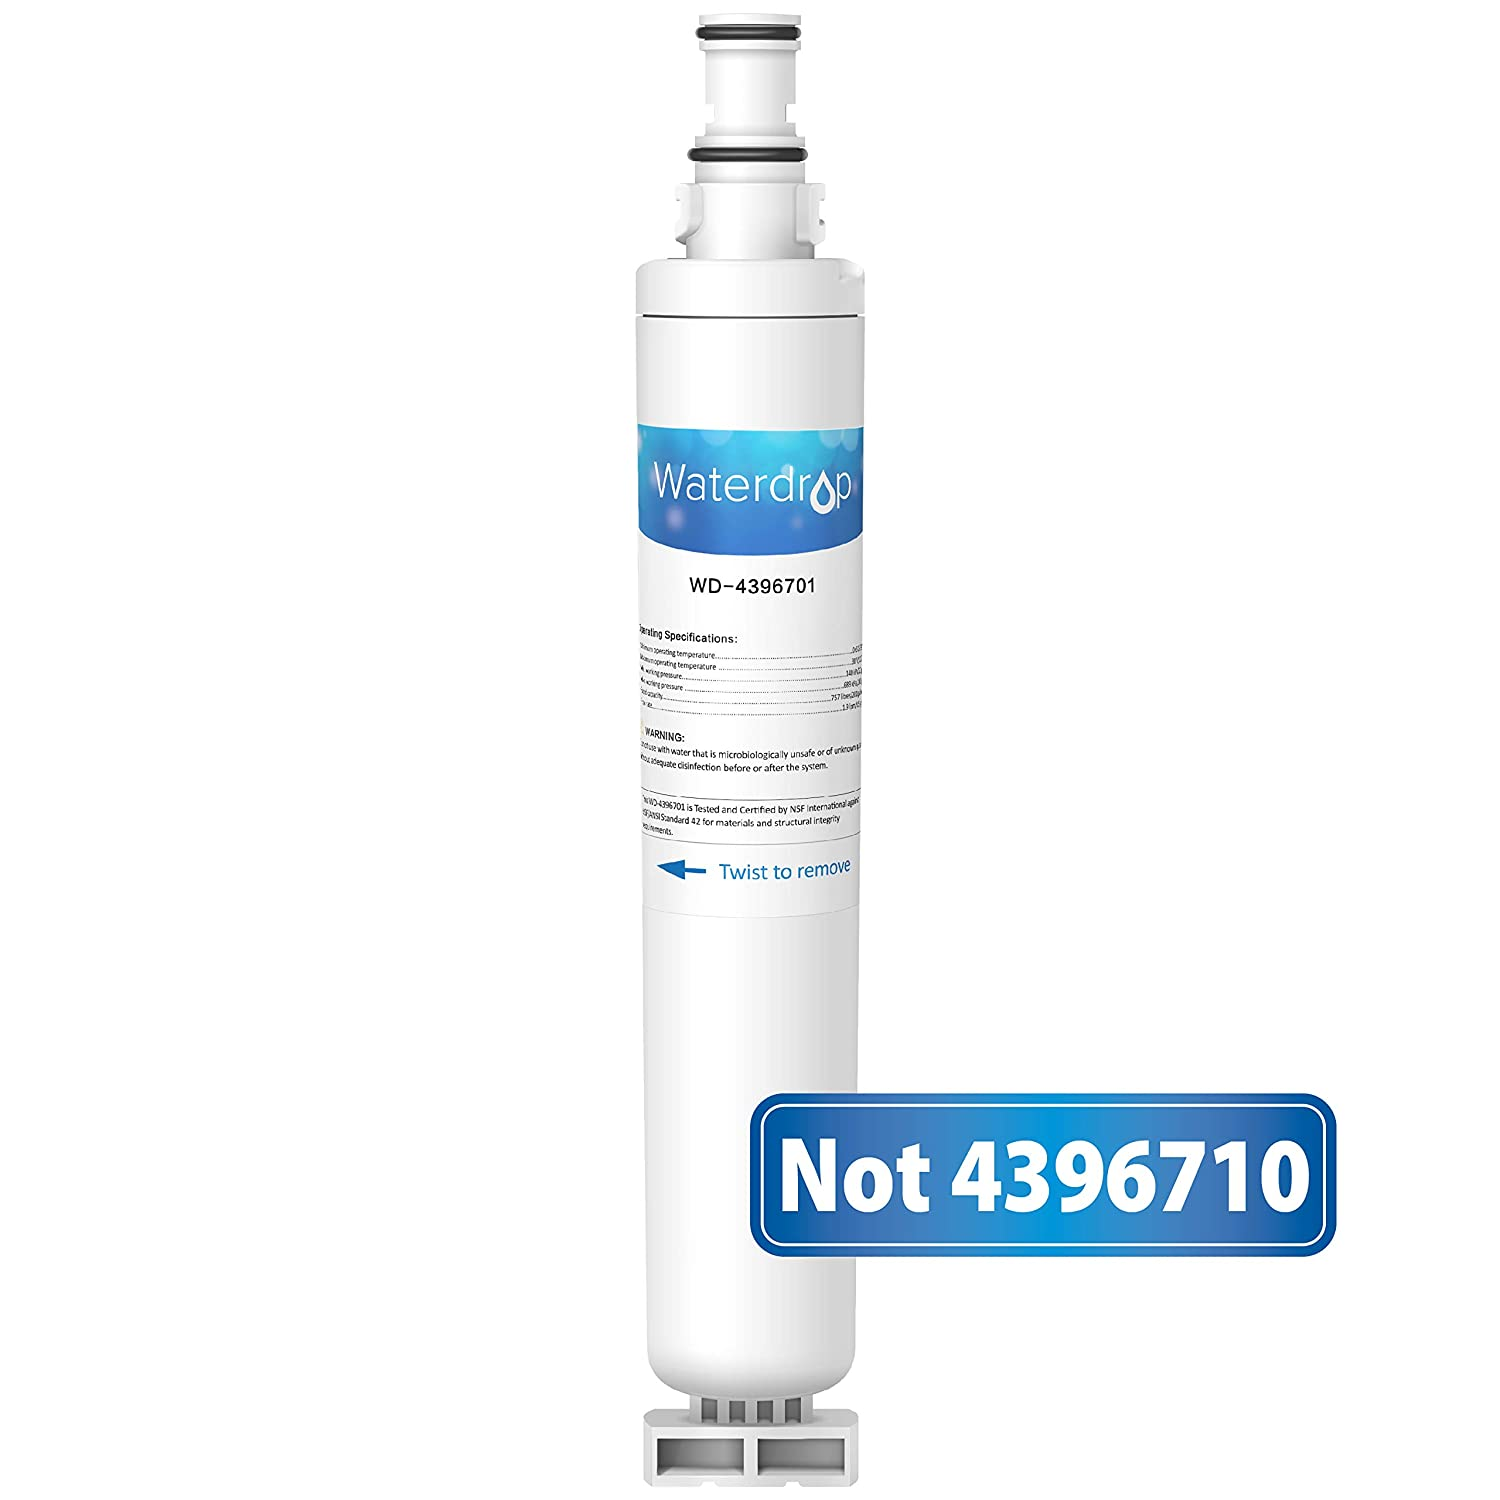 Waterdrop Refrigerator Water Filter, Compatible with Whirlpool 4396702, 4396701, EDR6D1, EveryDrop Filter 6, Kenmore 9915, 46-9915